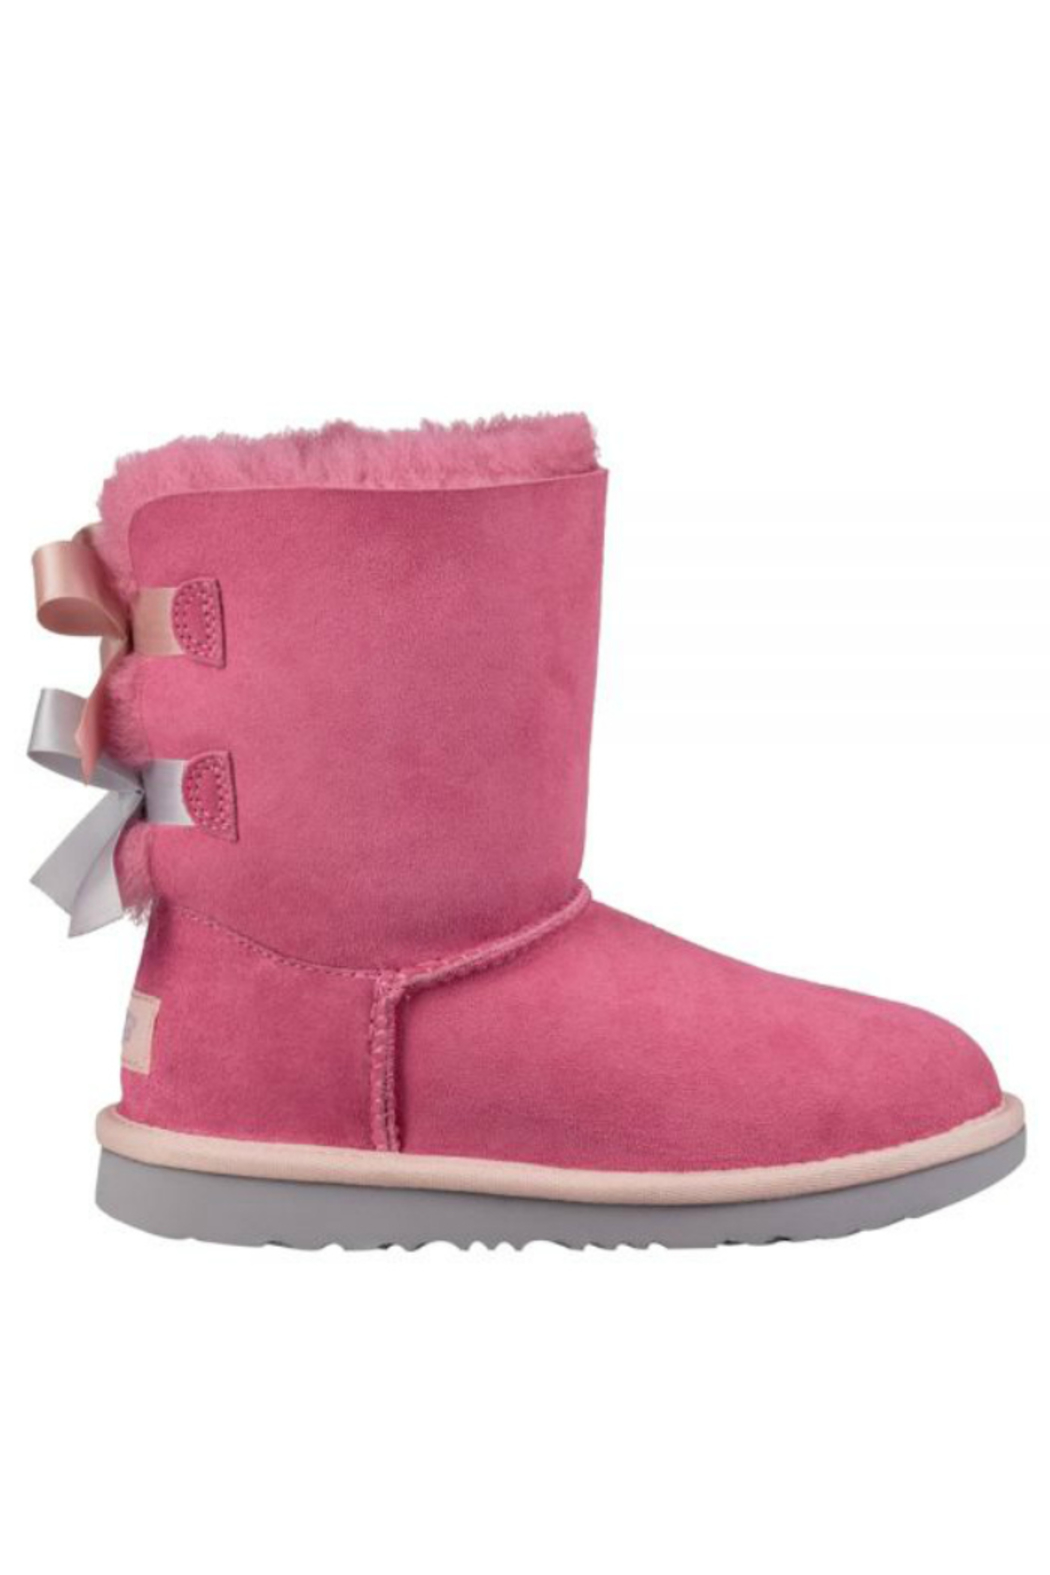 004e3602260 UGG Australia UGG BAILEY BOW II from New Jersey by Suburban Shoes ...